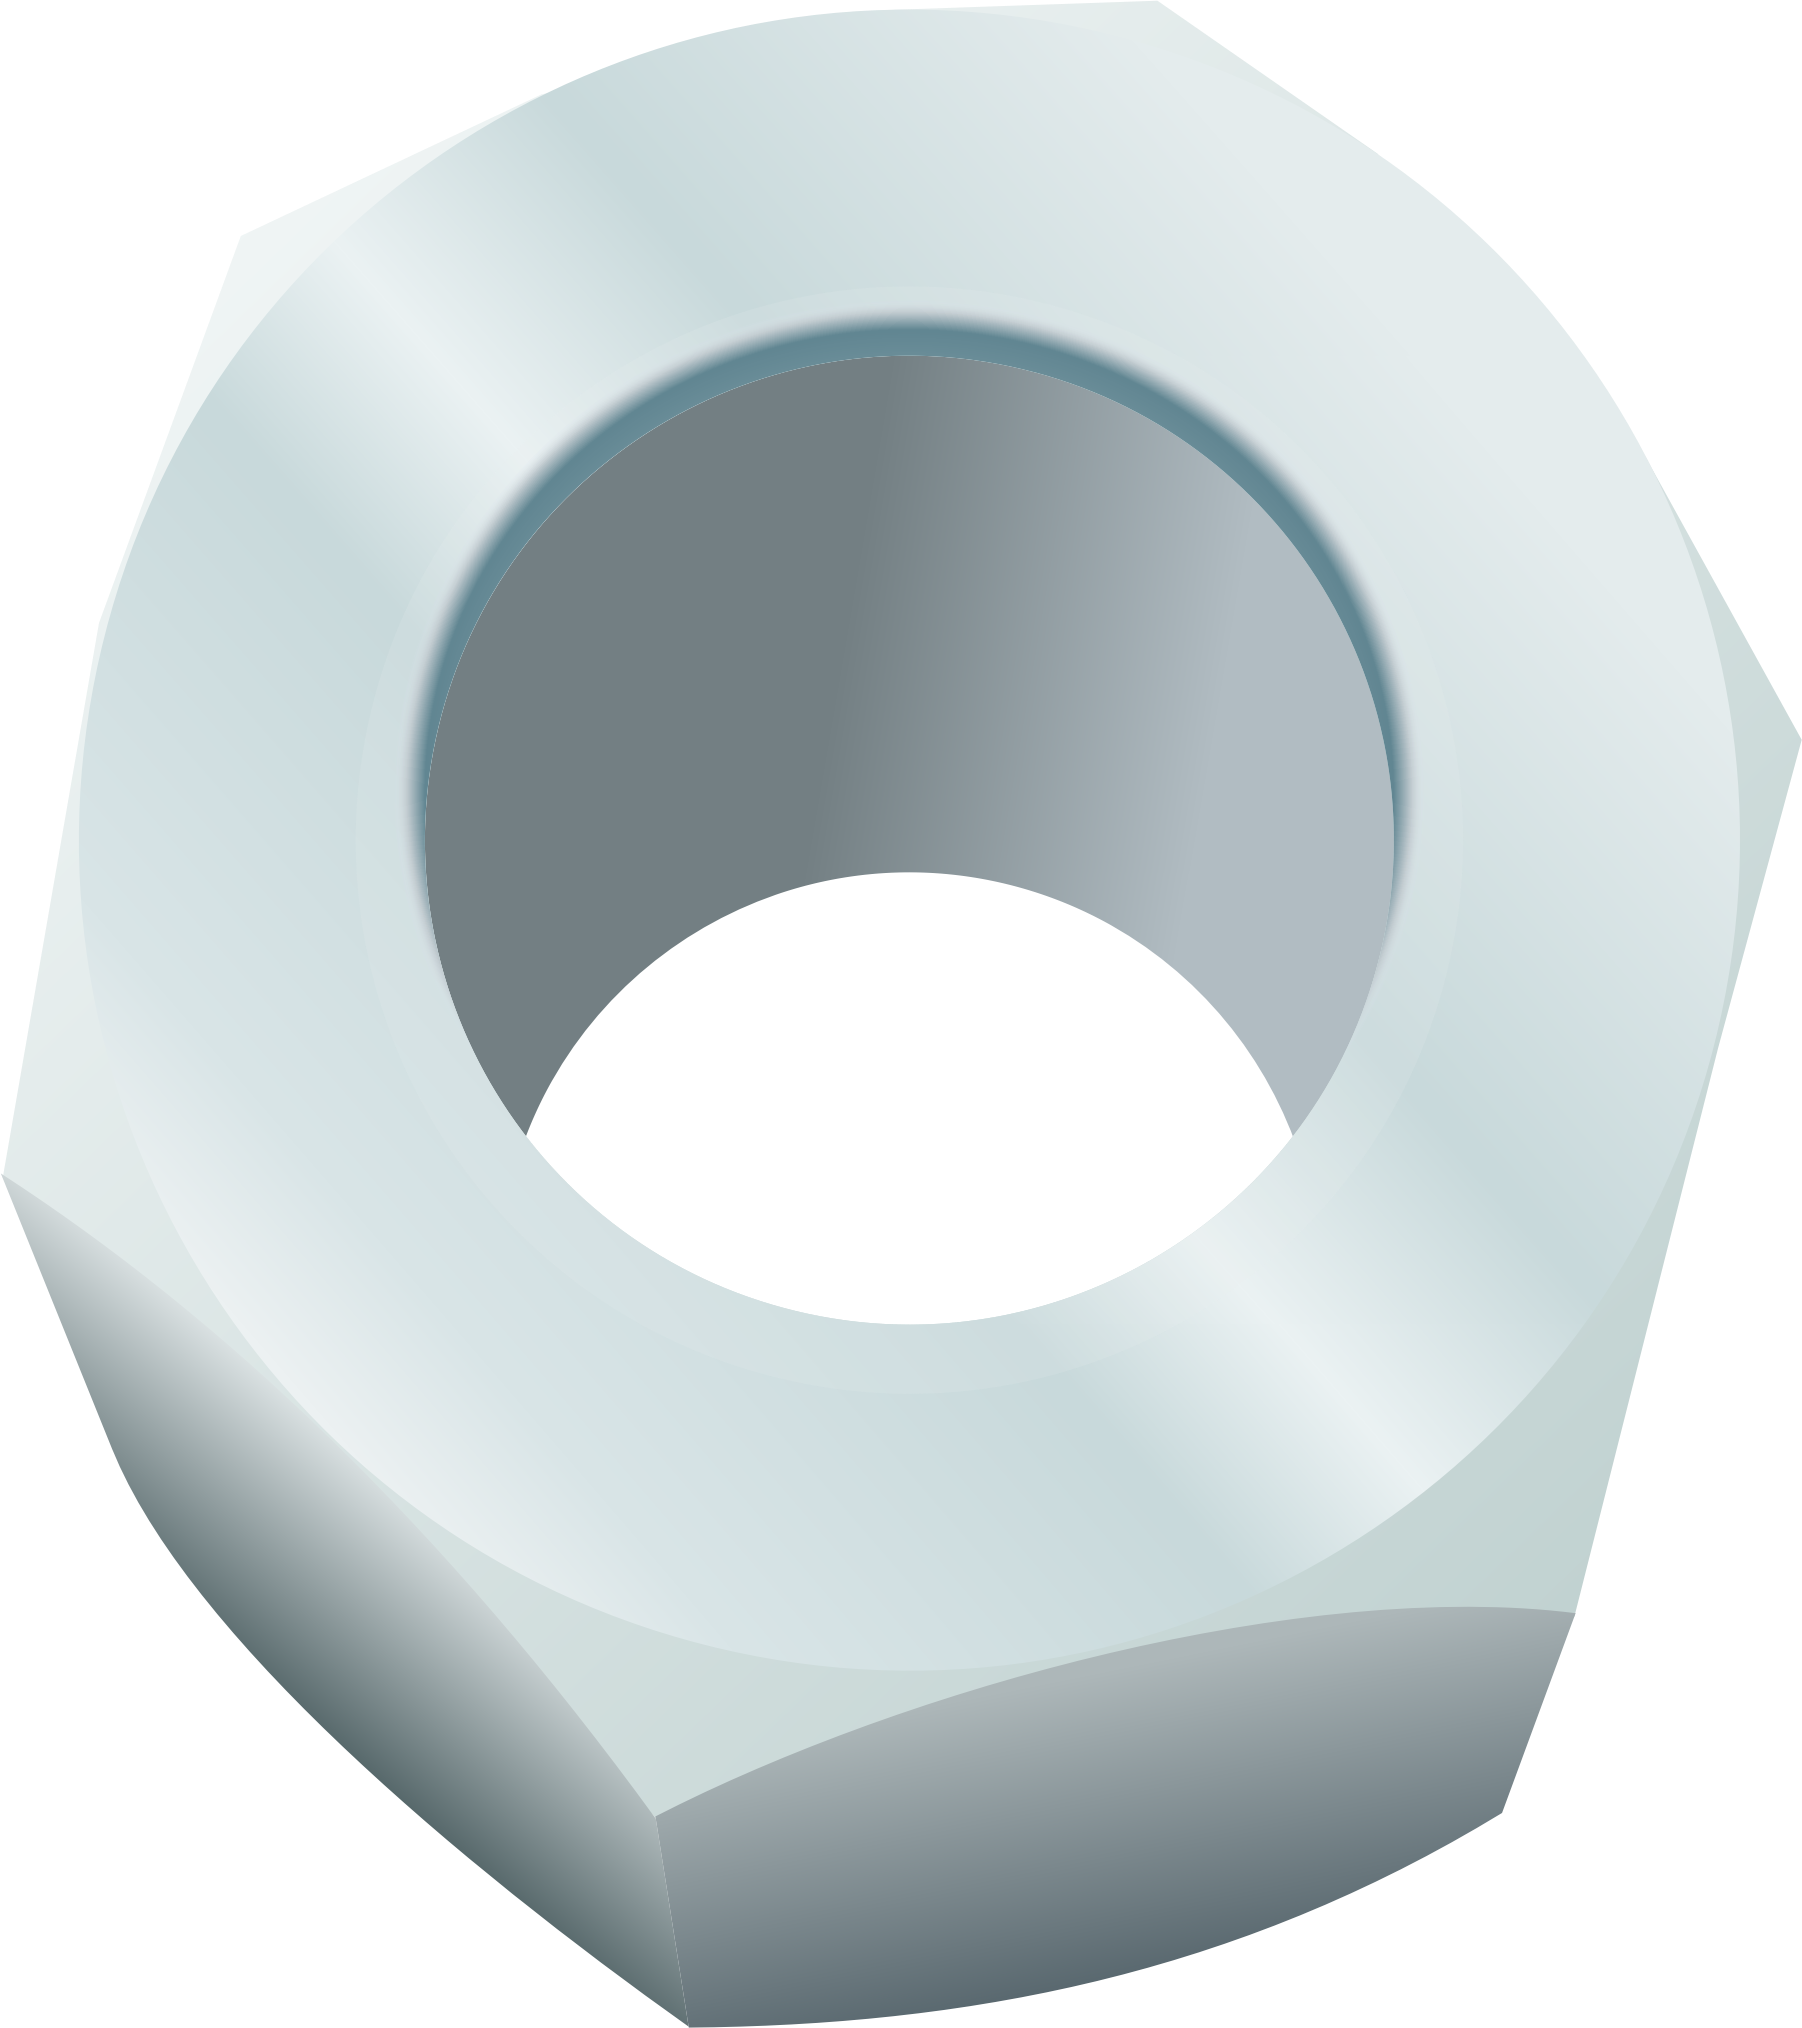 Big image png. Nut clipart screw nut